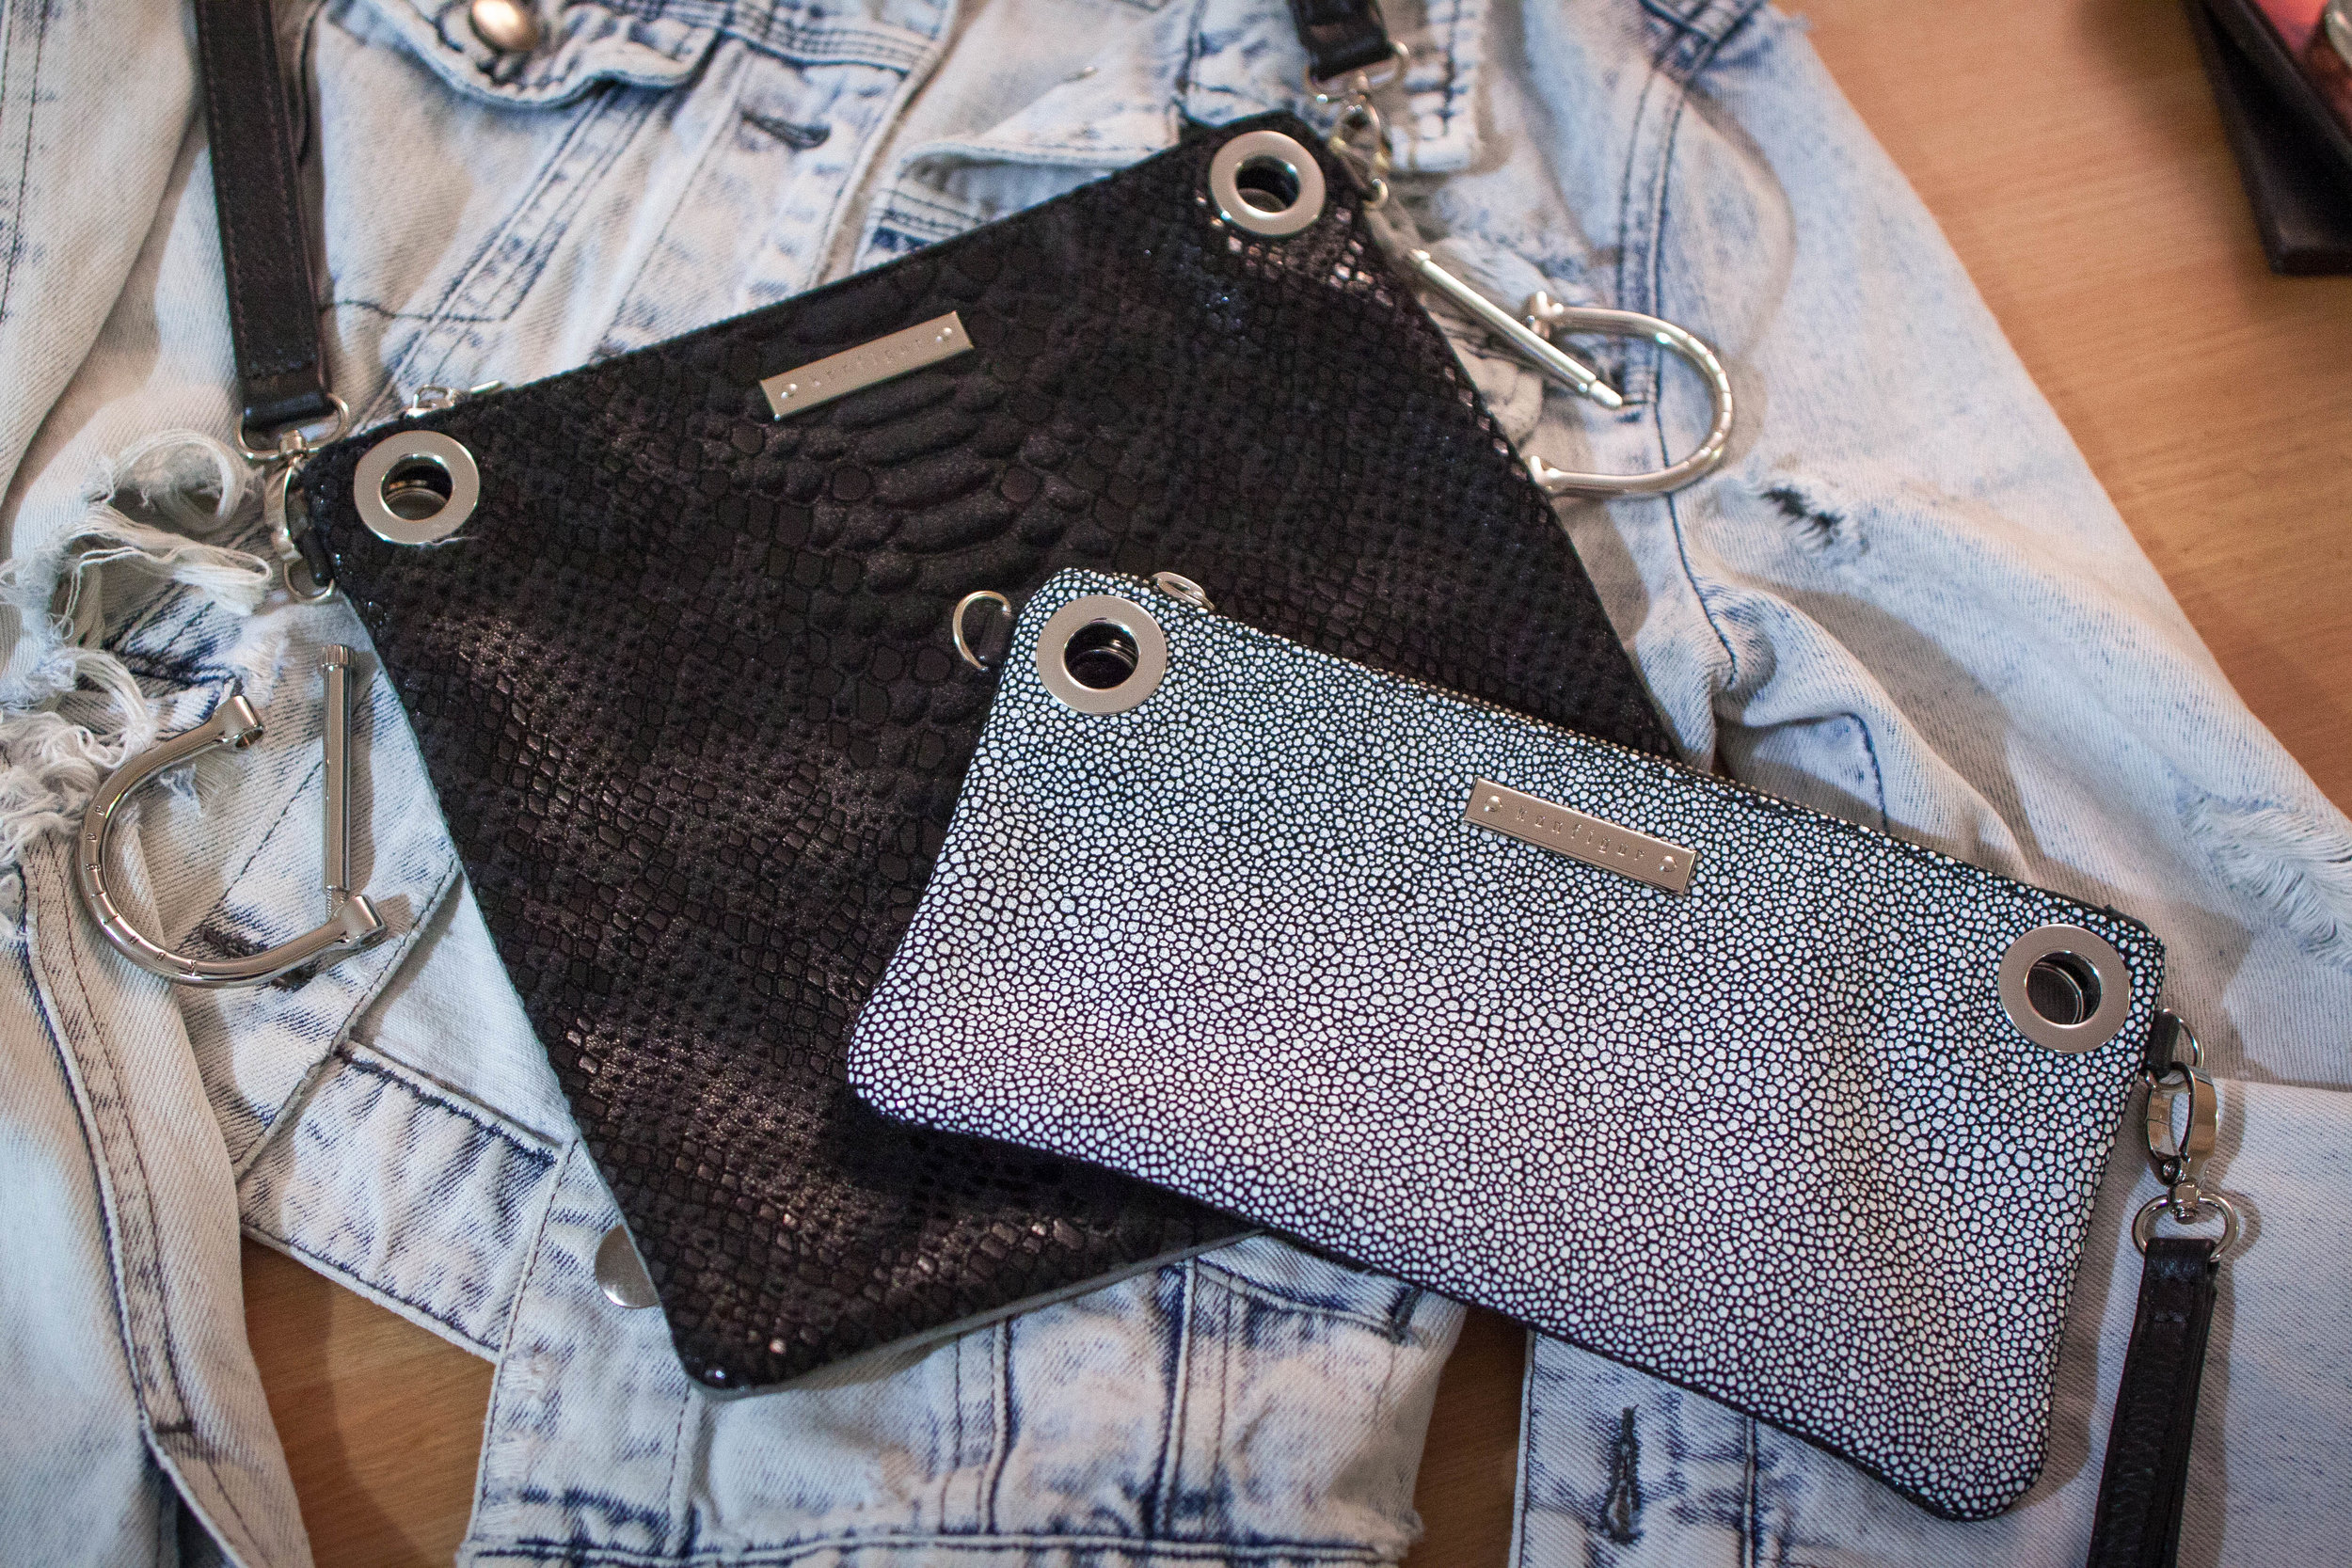 I love using this bag in this contrasting style as the smaller white pebble print clutch stands out so well against the black alligator print.